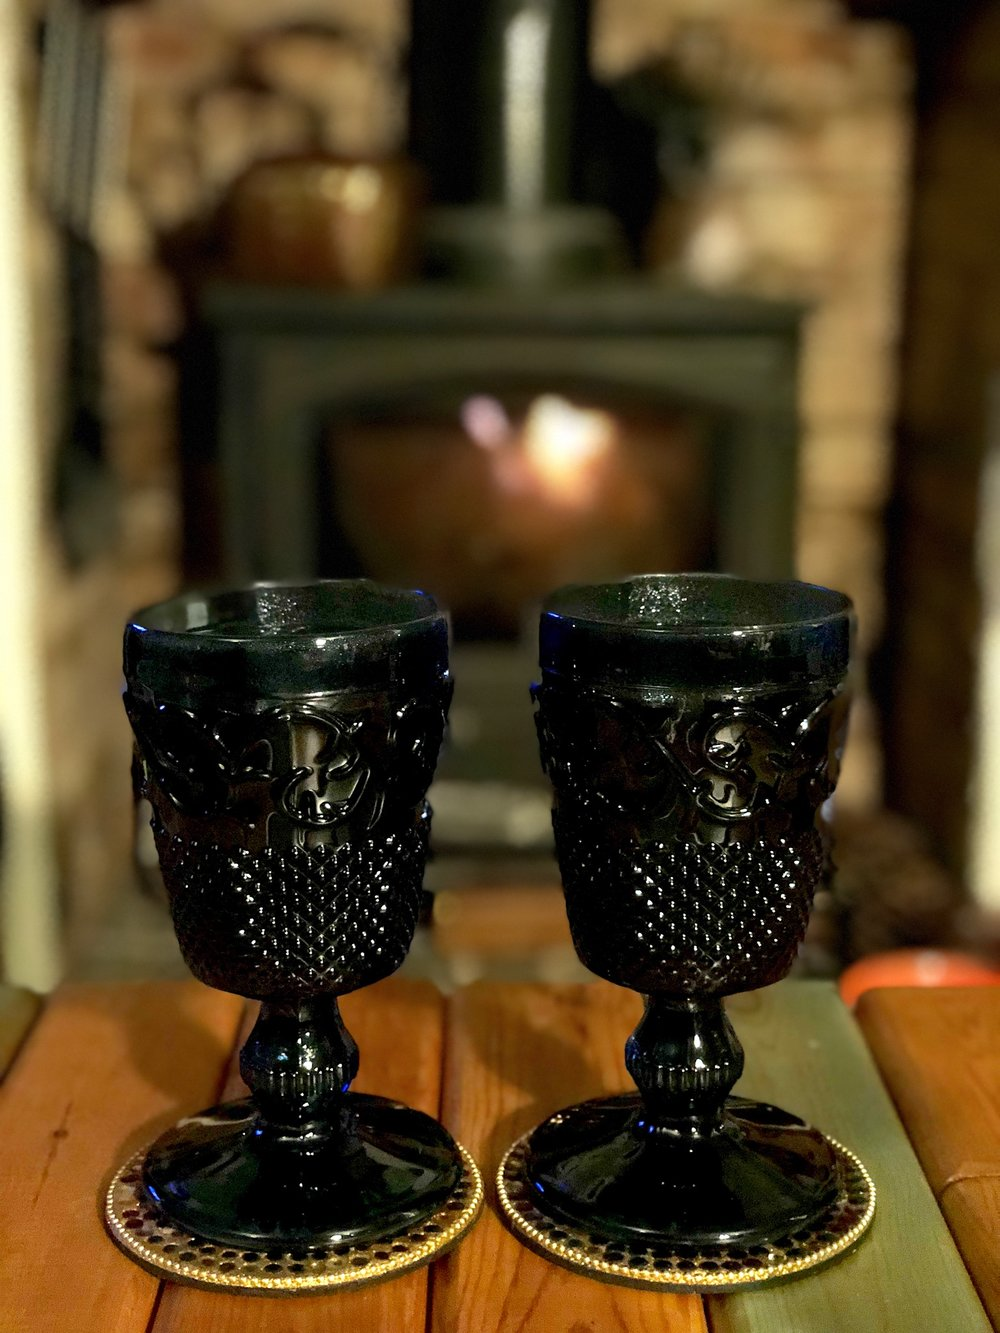 Lovely Christmas goblets bought by my Mum and Dad. Perfect gift for mulled wine!